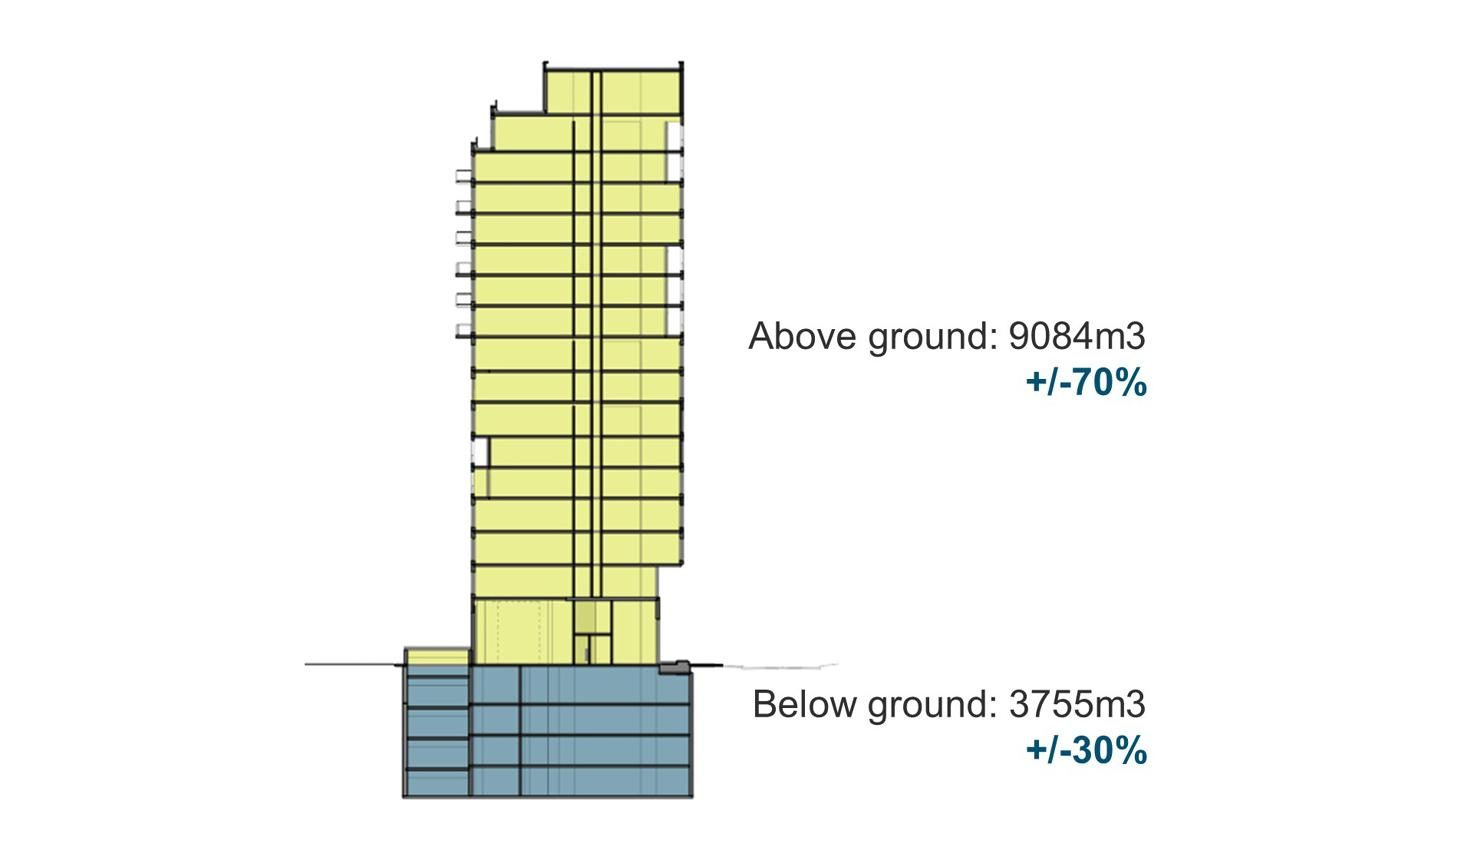 four levels of below ground structure accounting for 30% and 70% is above ground high rise